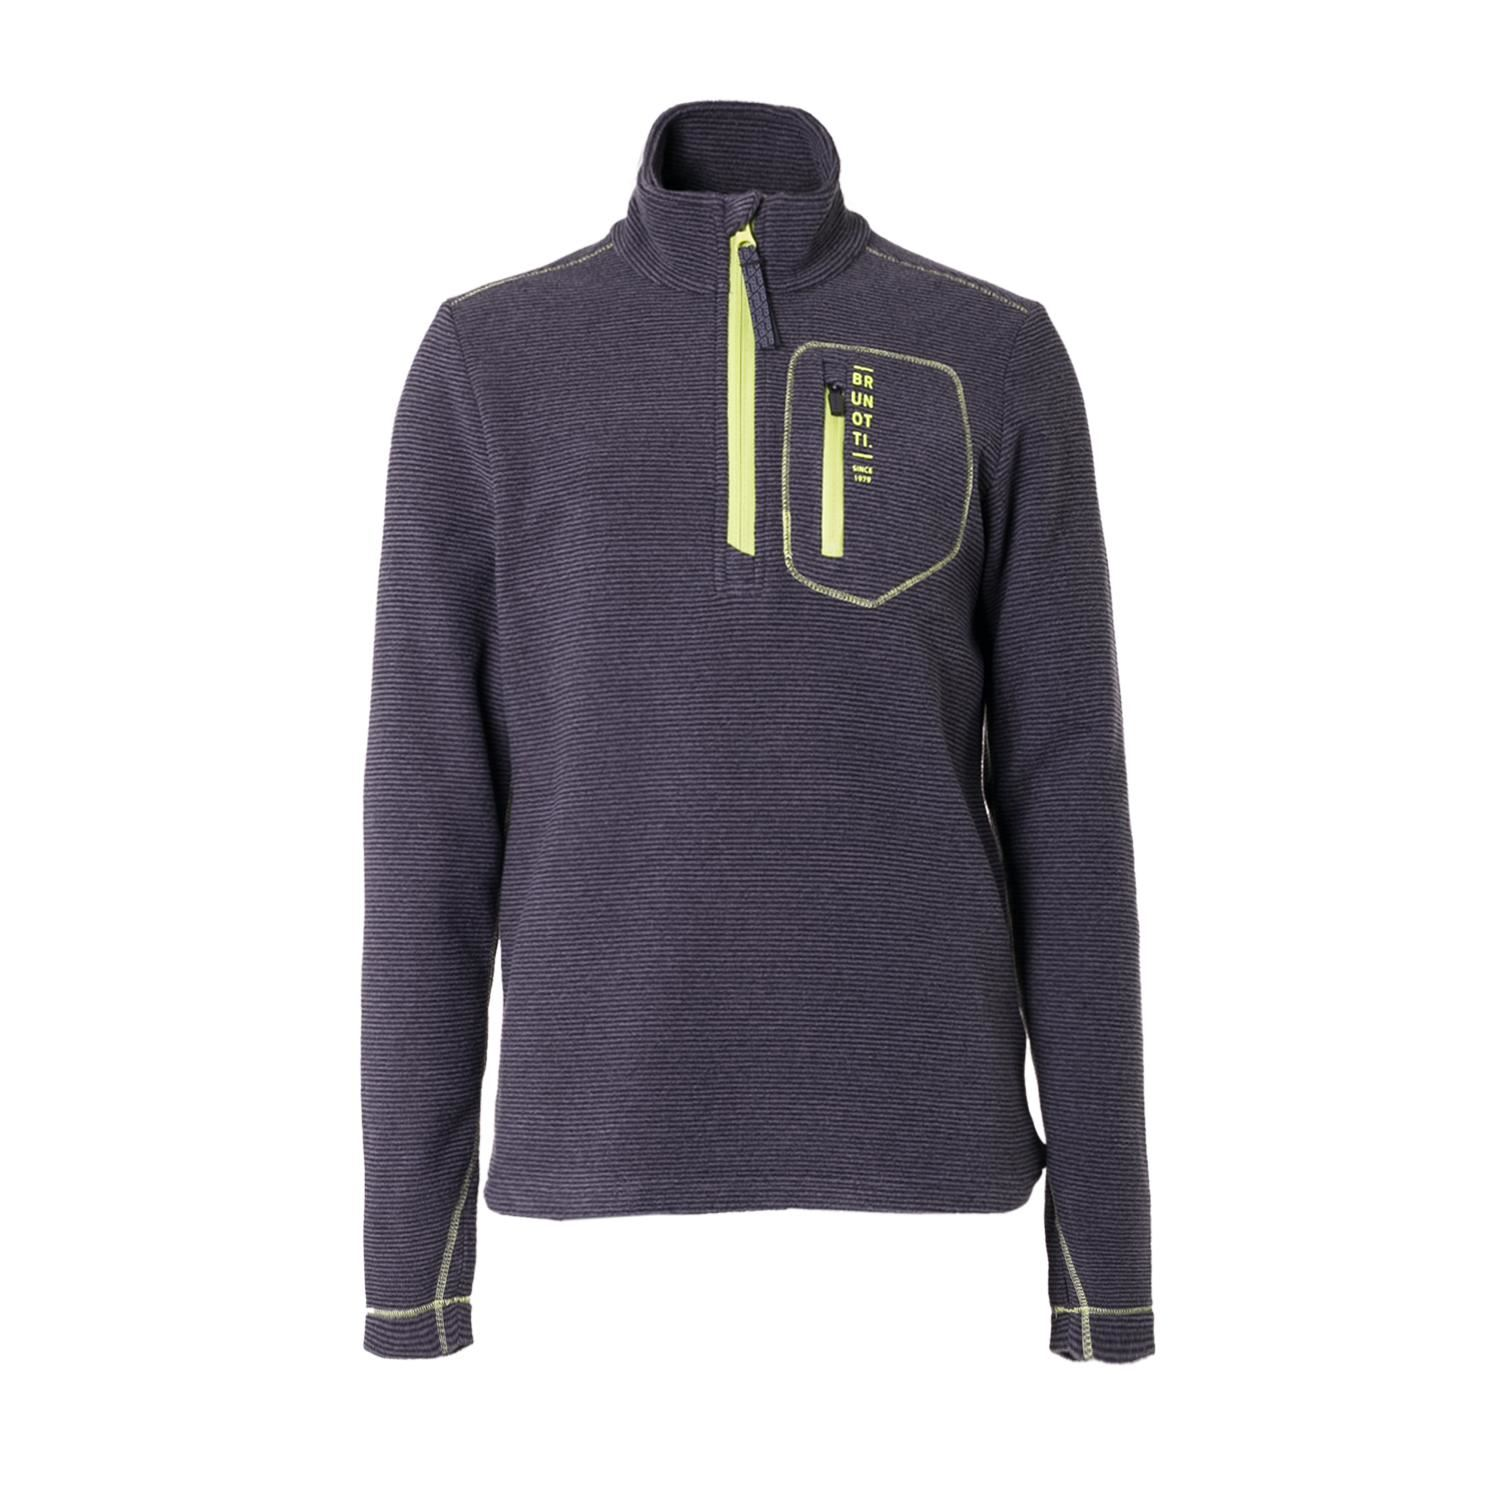 low priced 6c2ce b69c9 Aldrin JR Boys Fleece